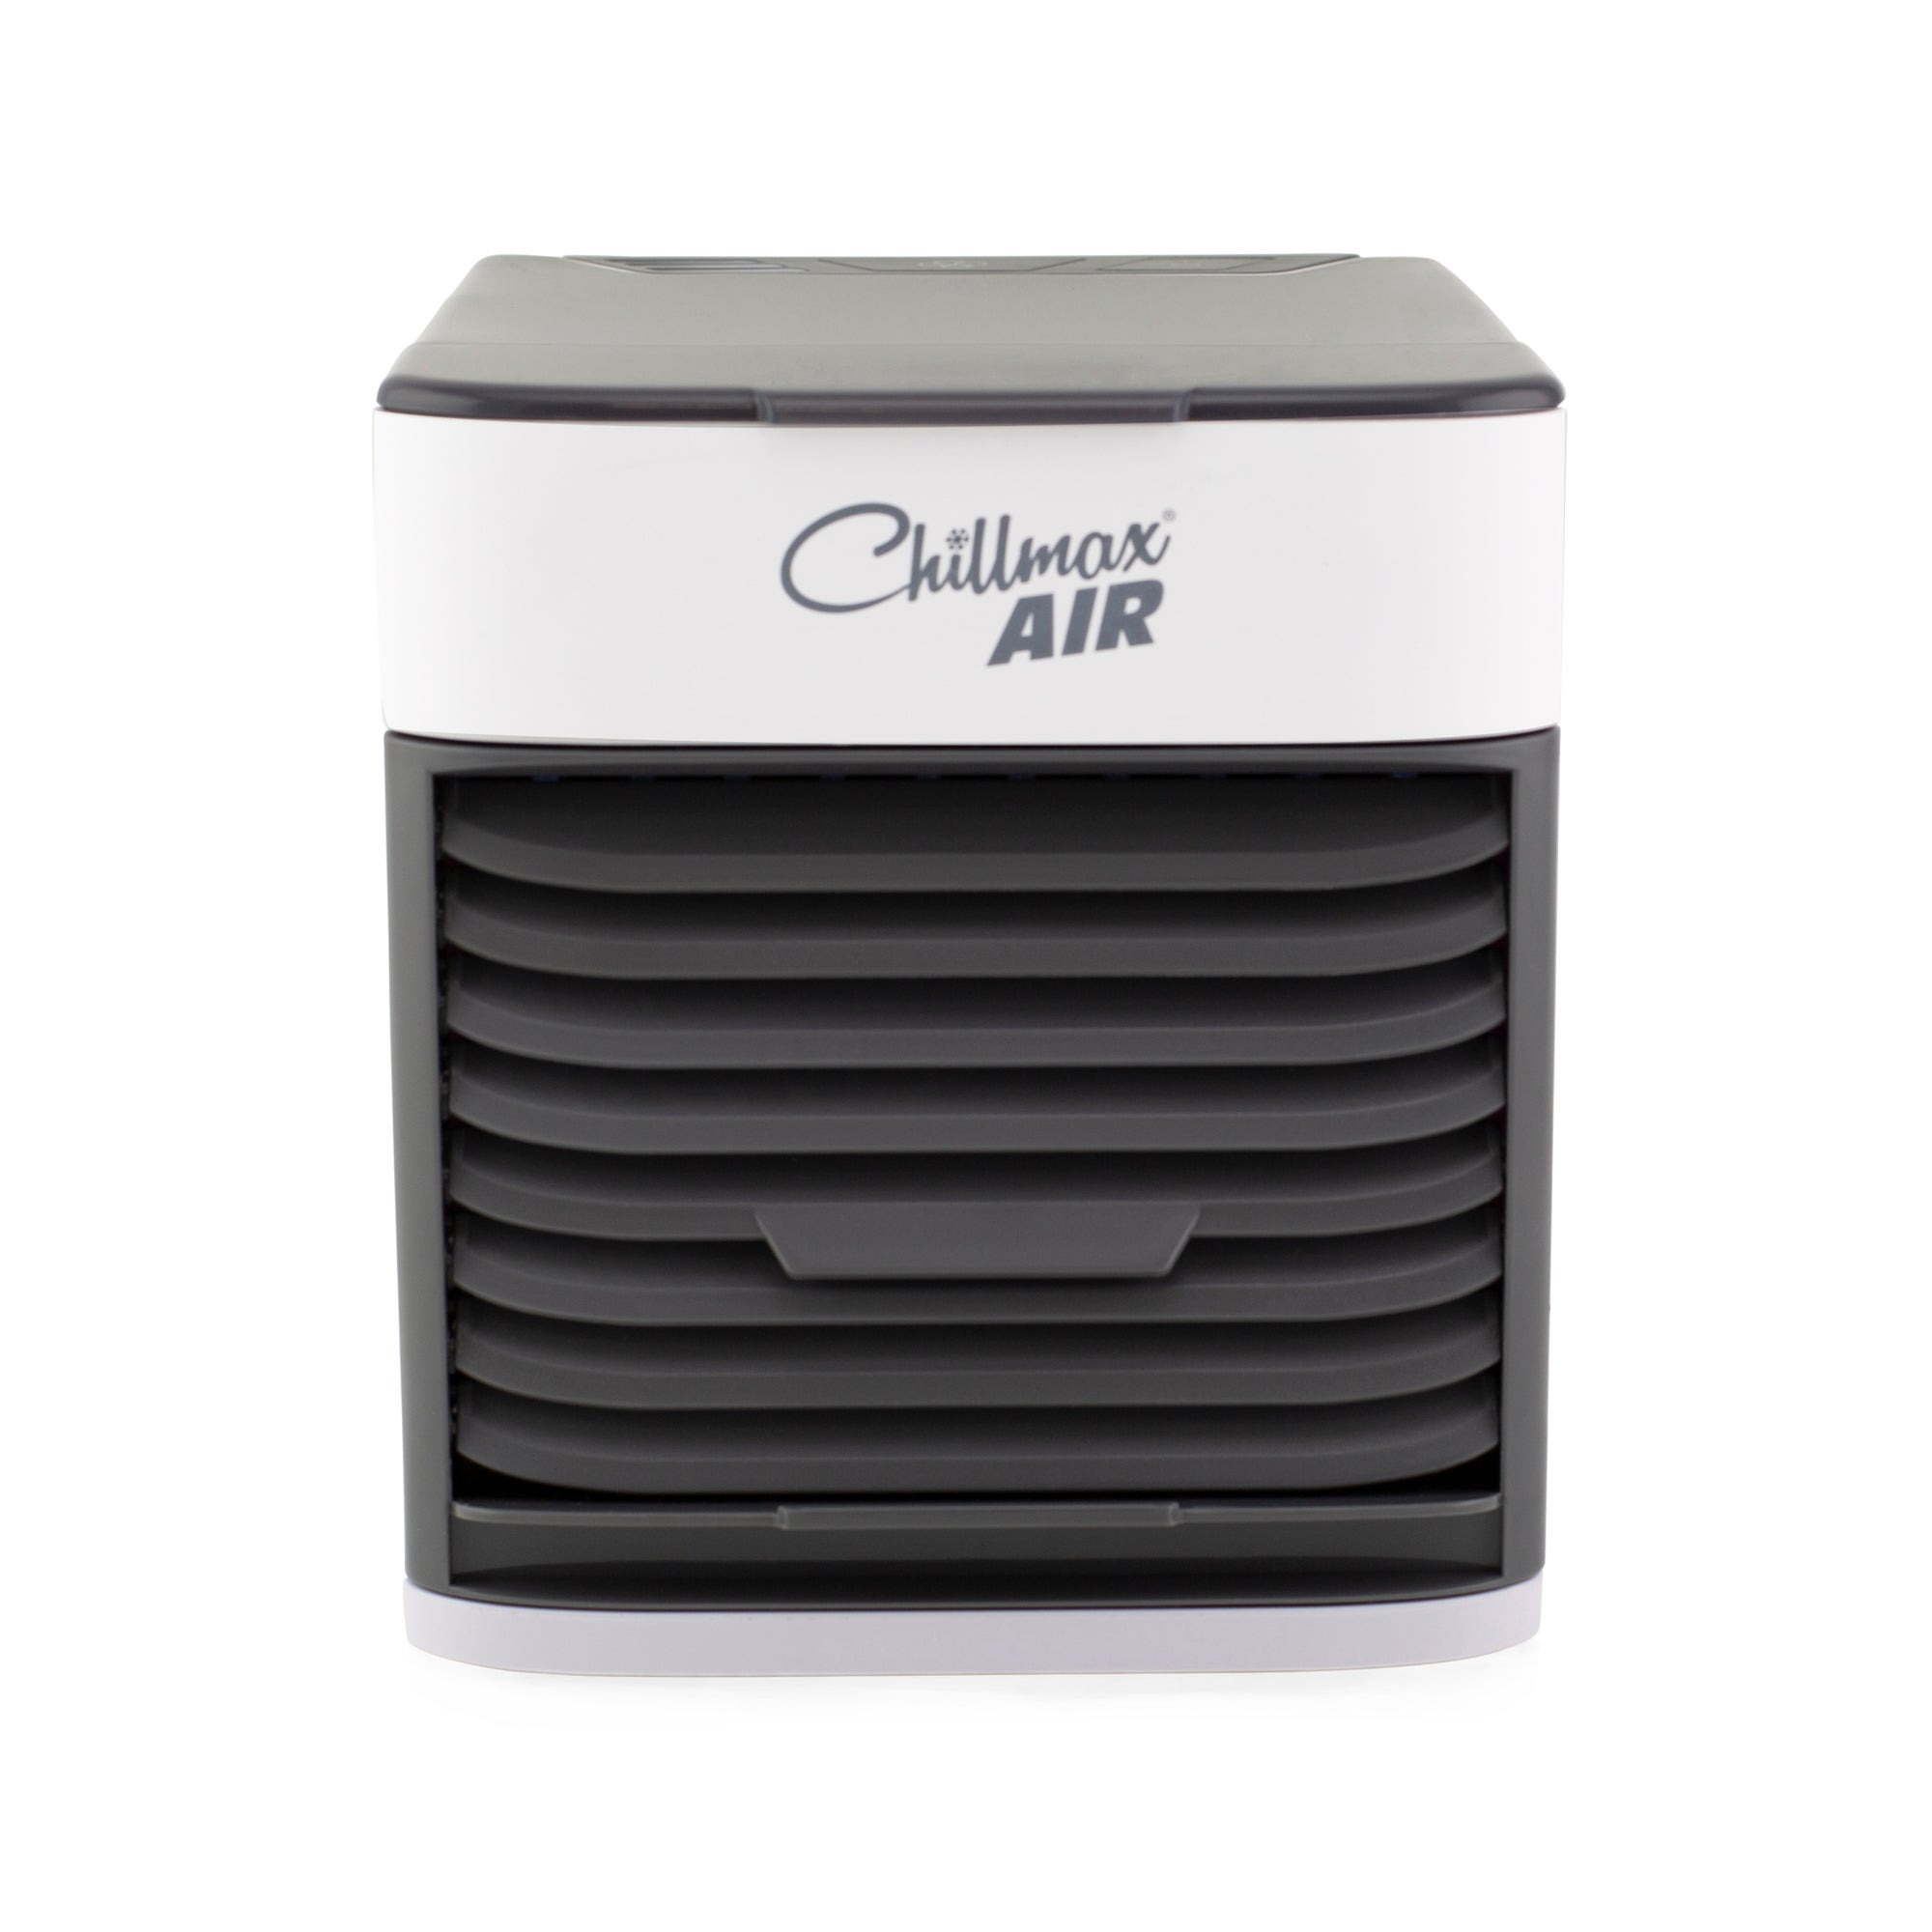 JML Chillmax Air Personal Space Air Cooler and Humidifier White